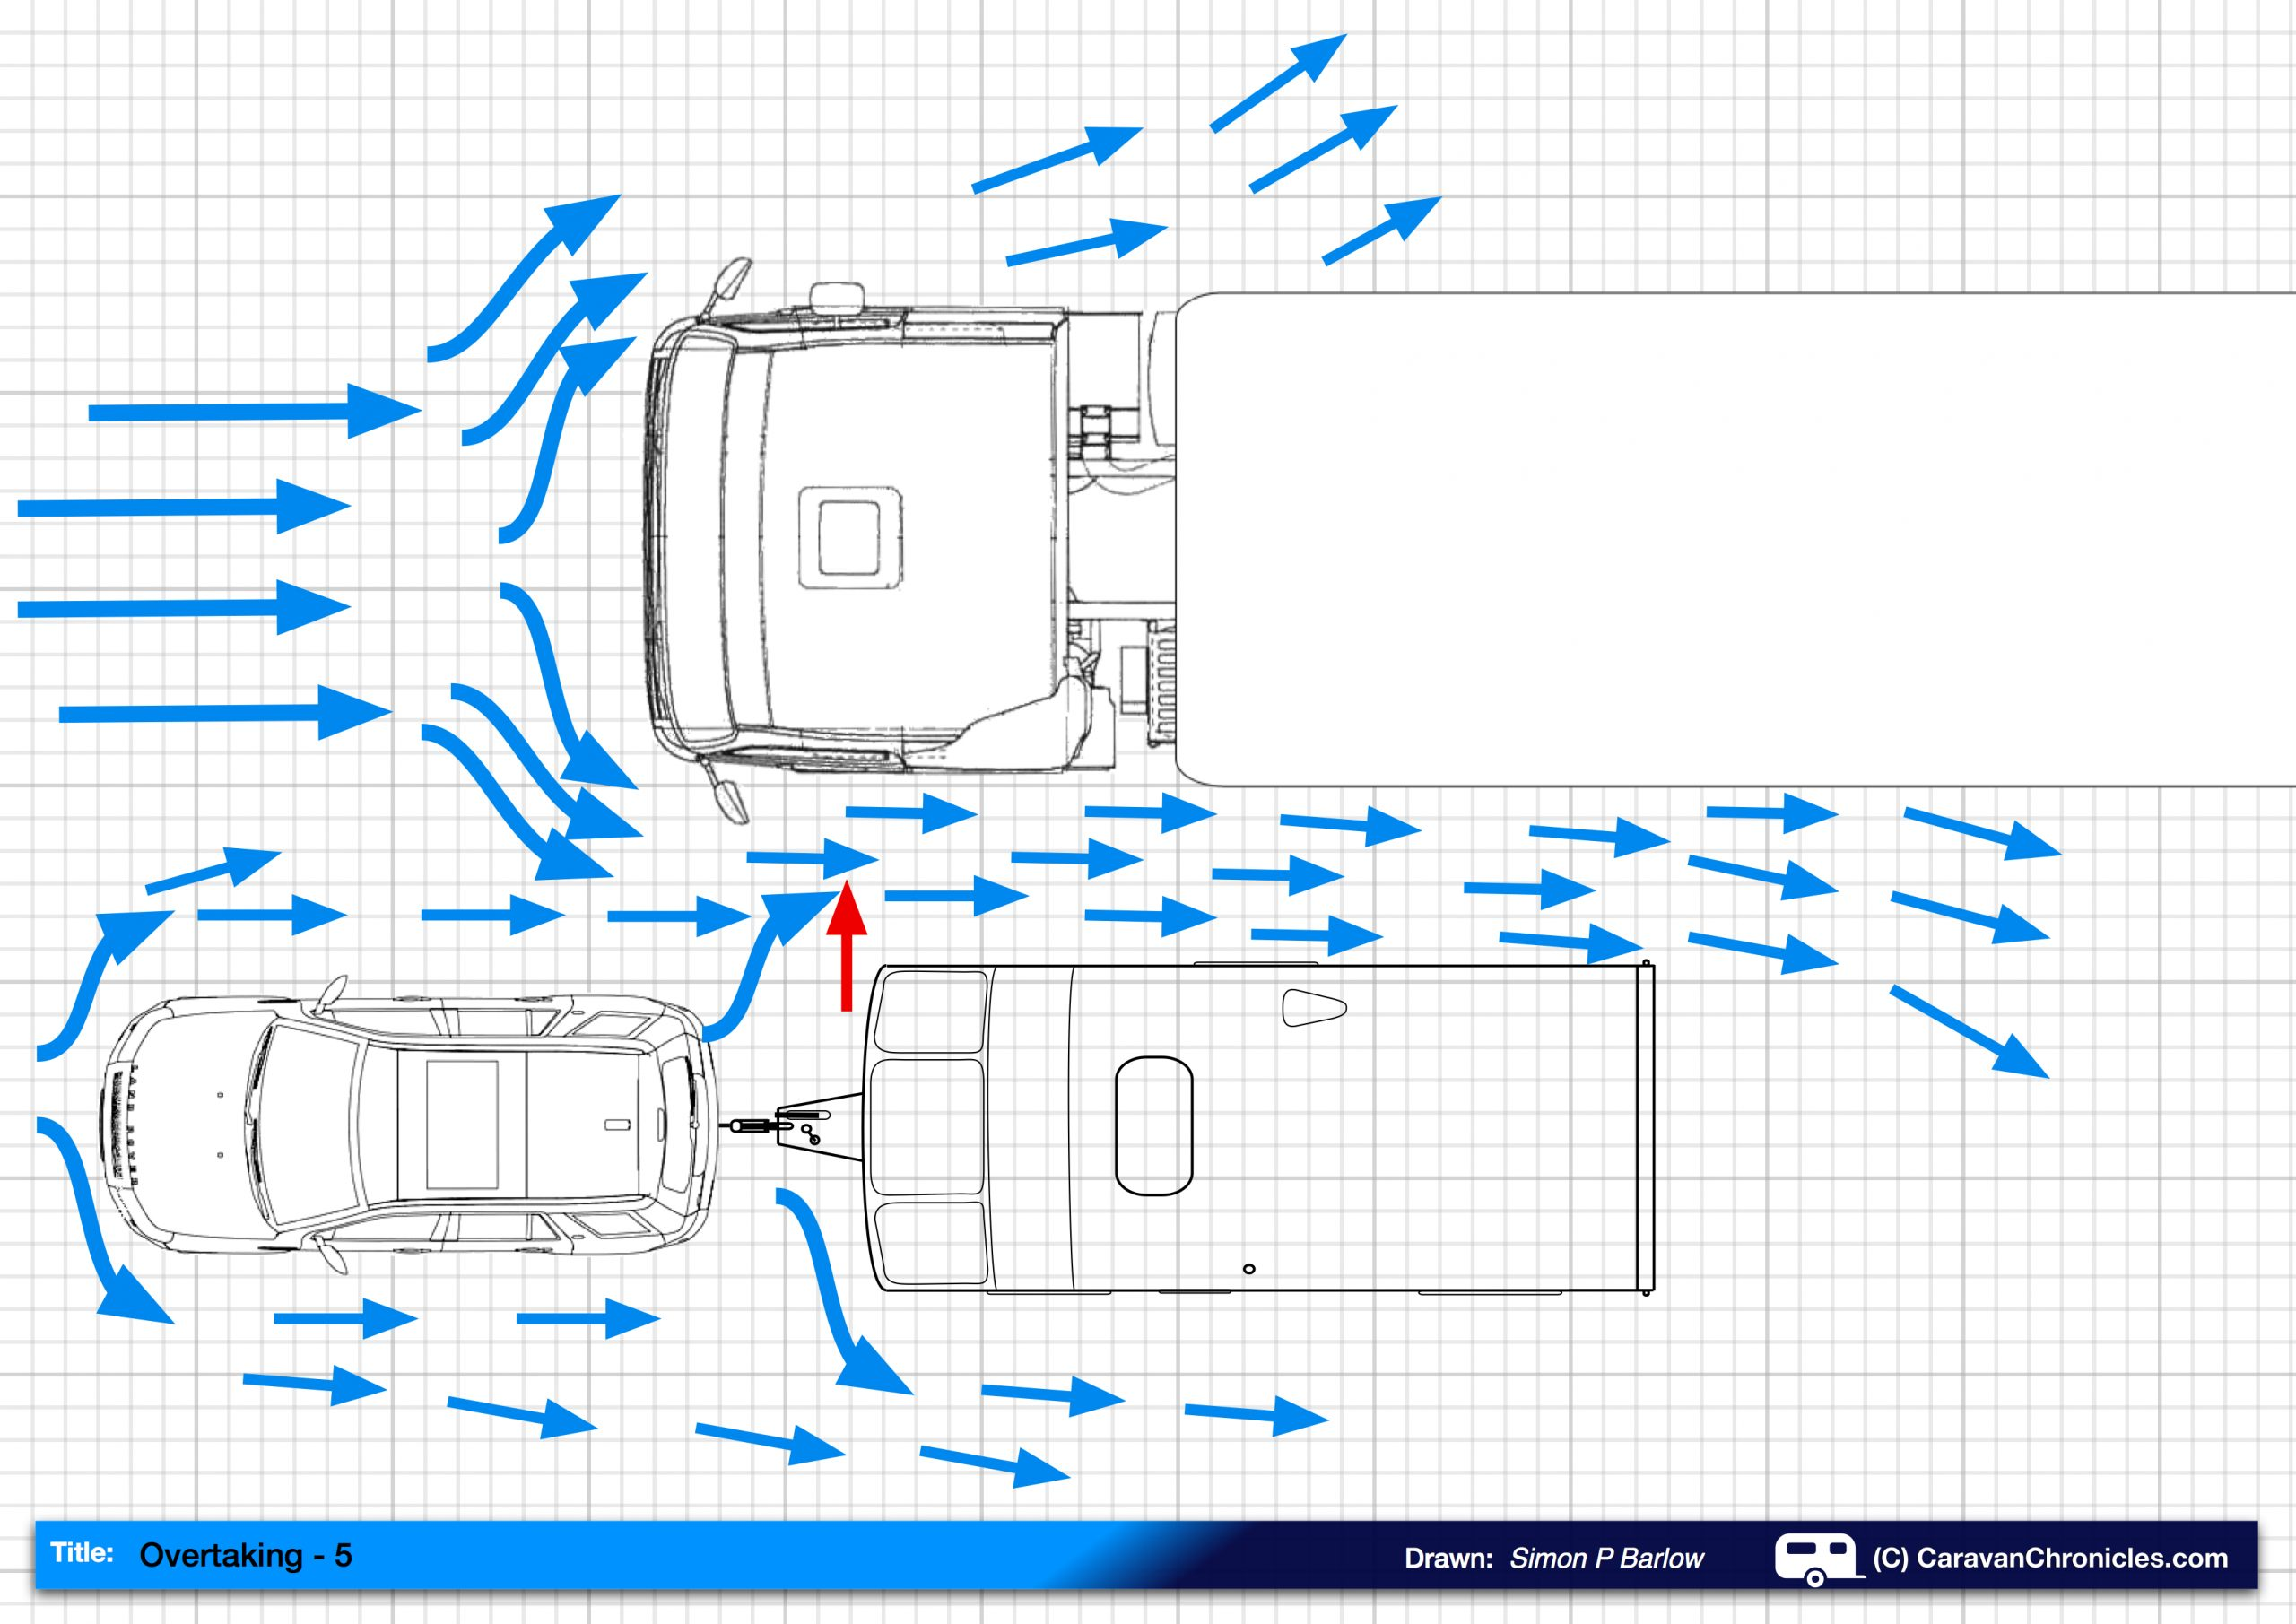 Dynamics Of Towing Overtaking 5